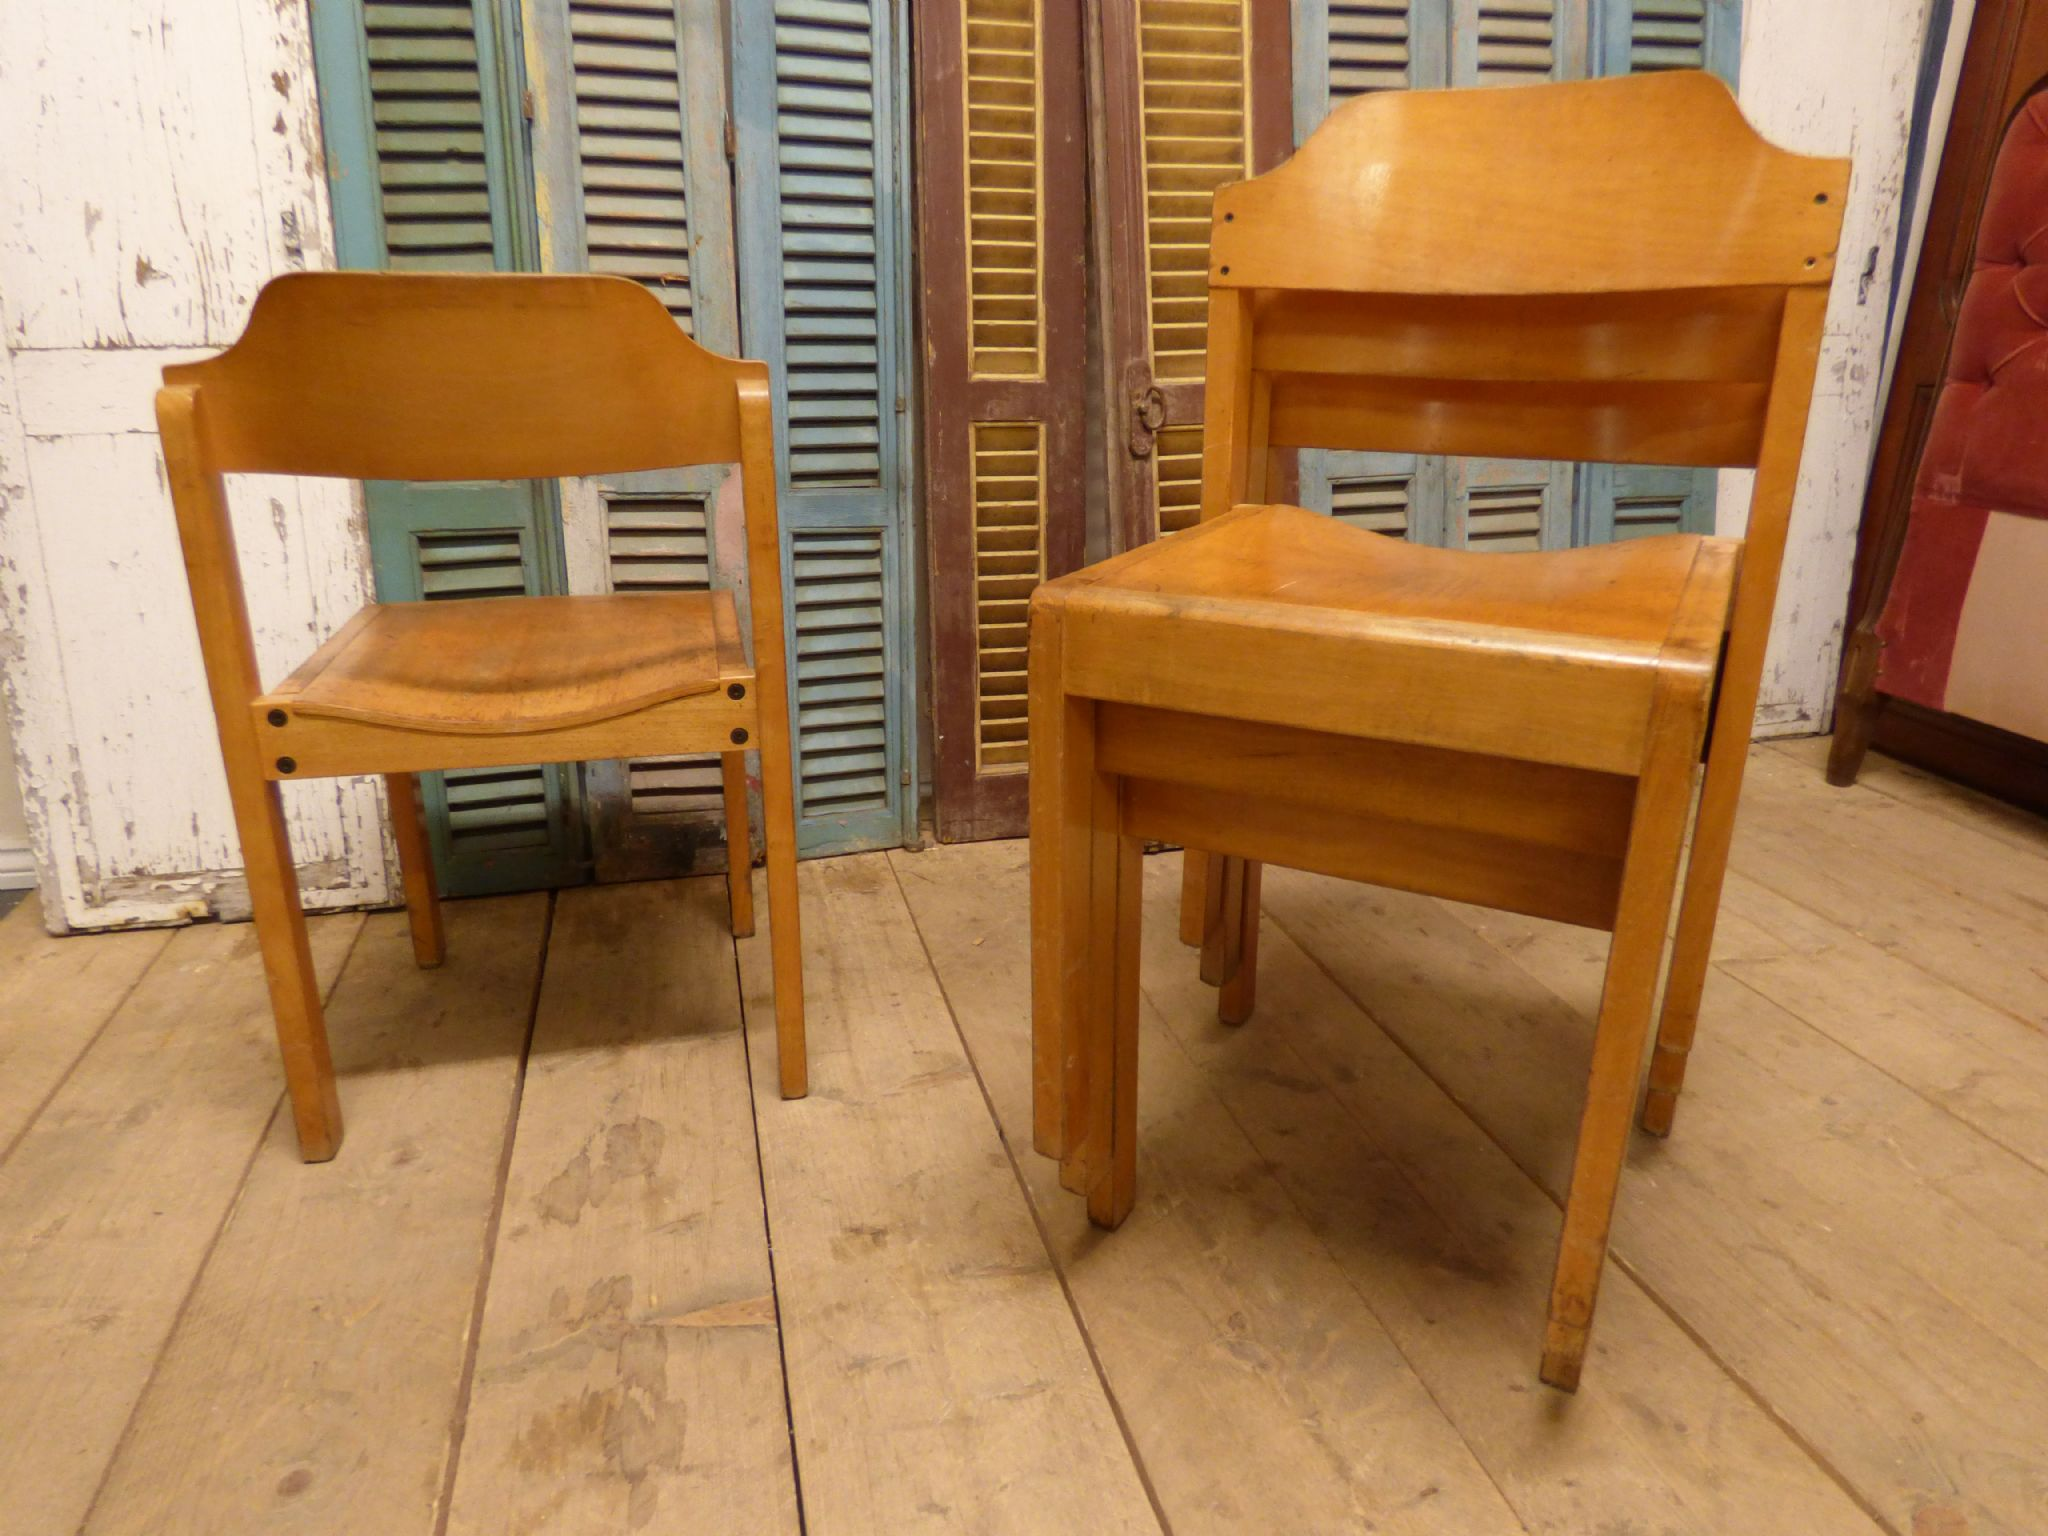 Vintage School Chairs Vintage French School Chairs Check For Availability